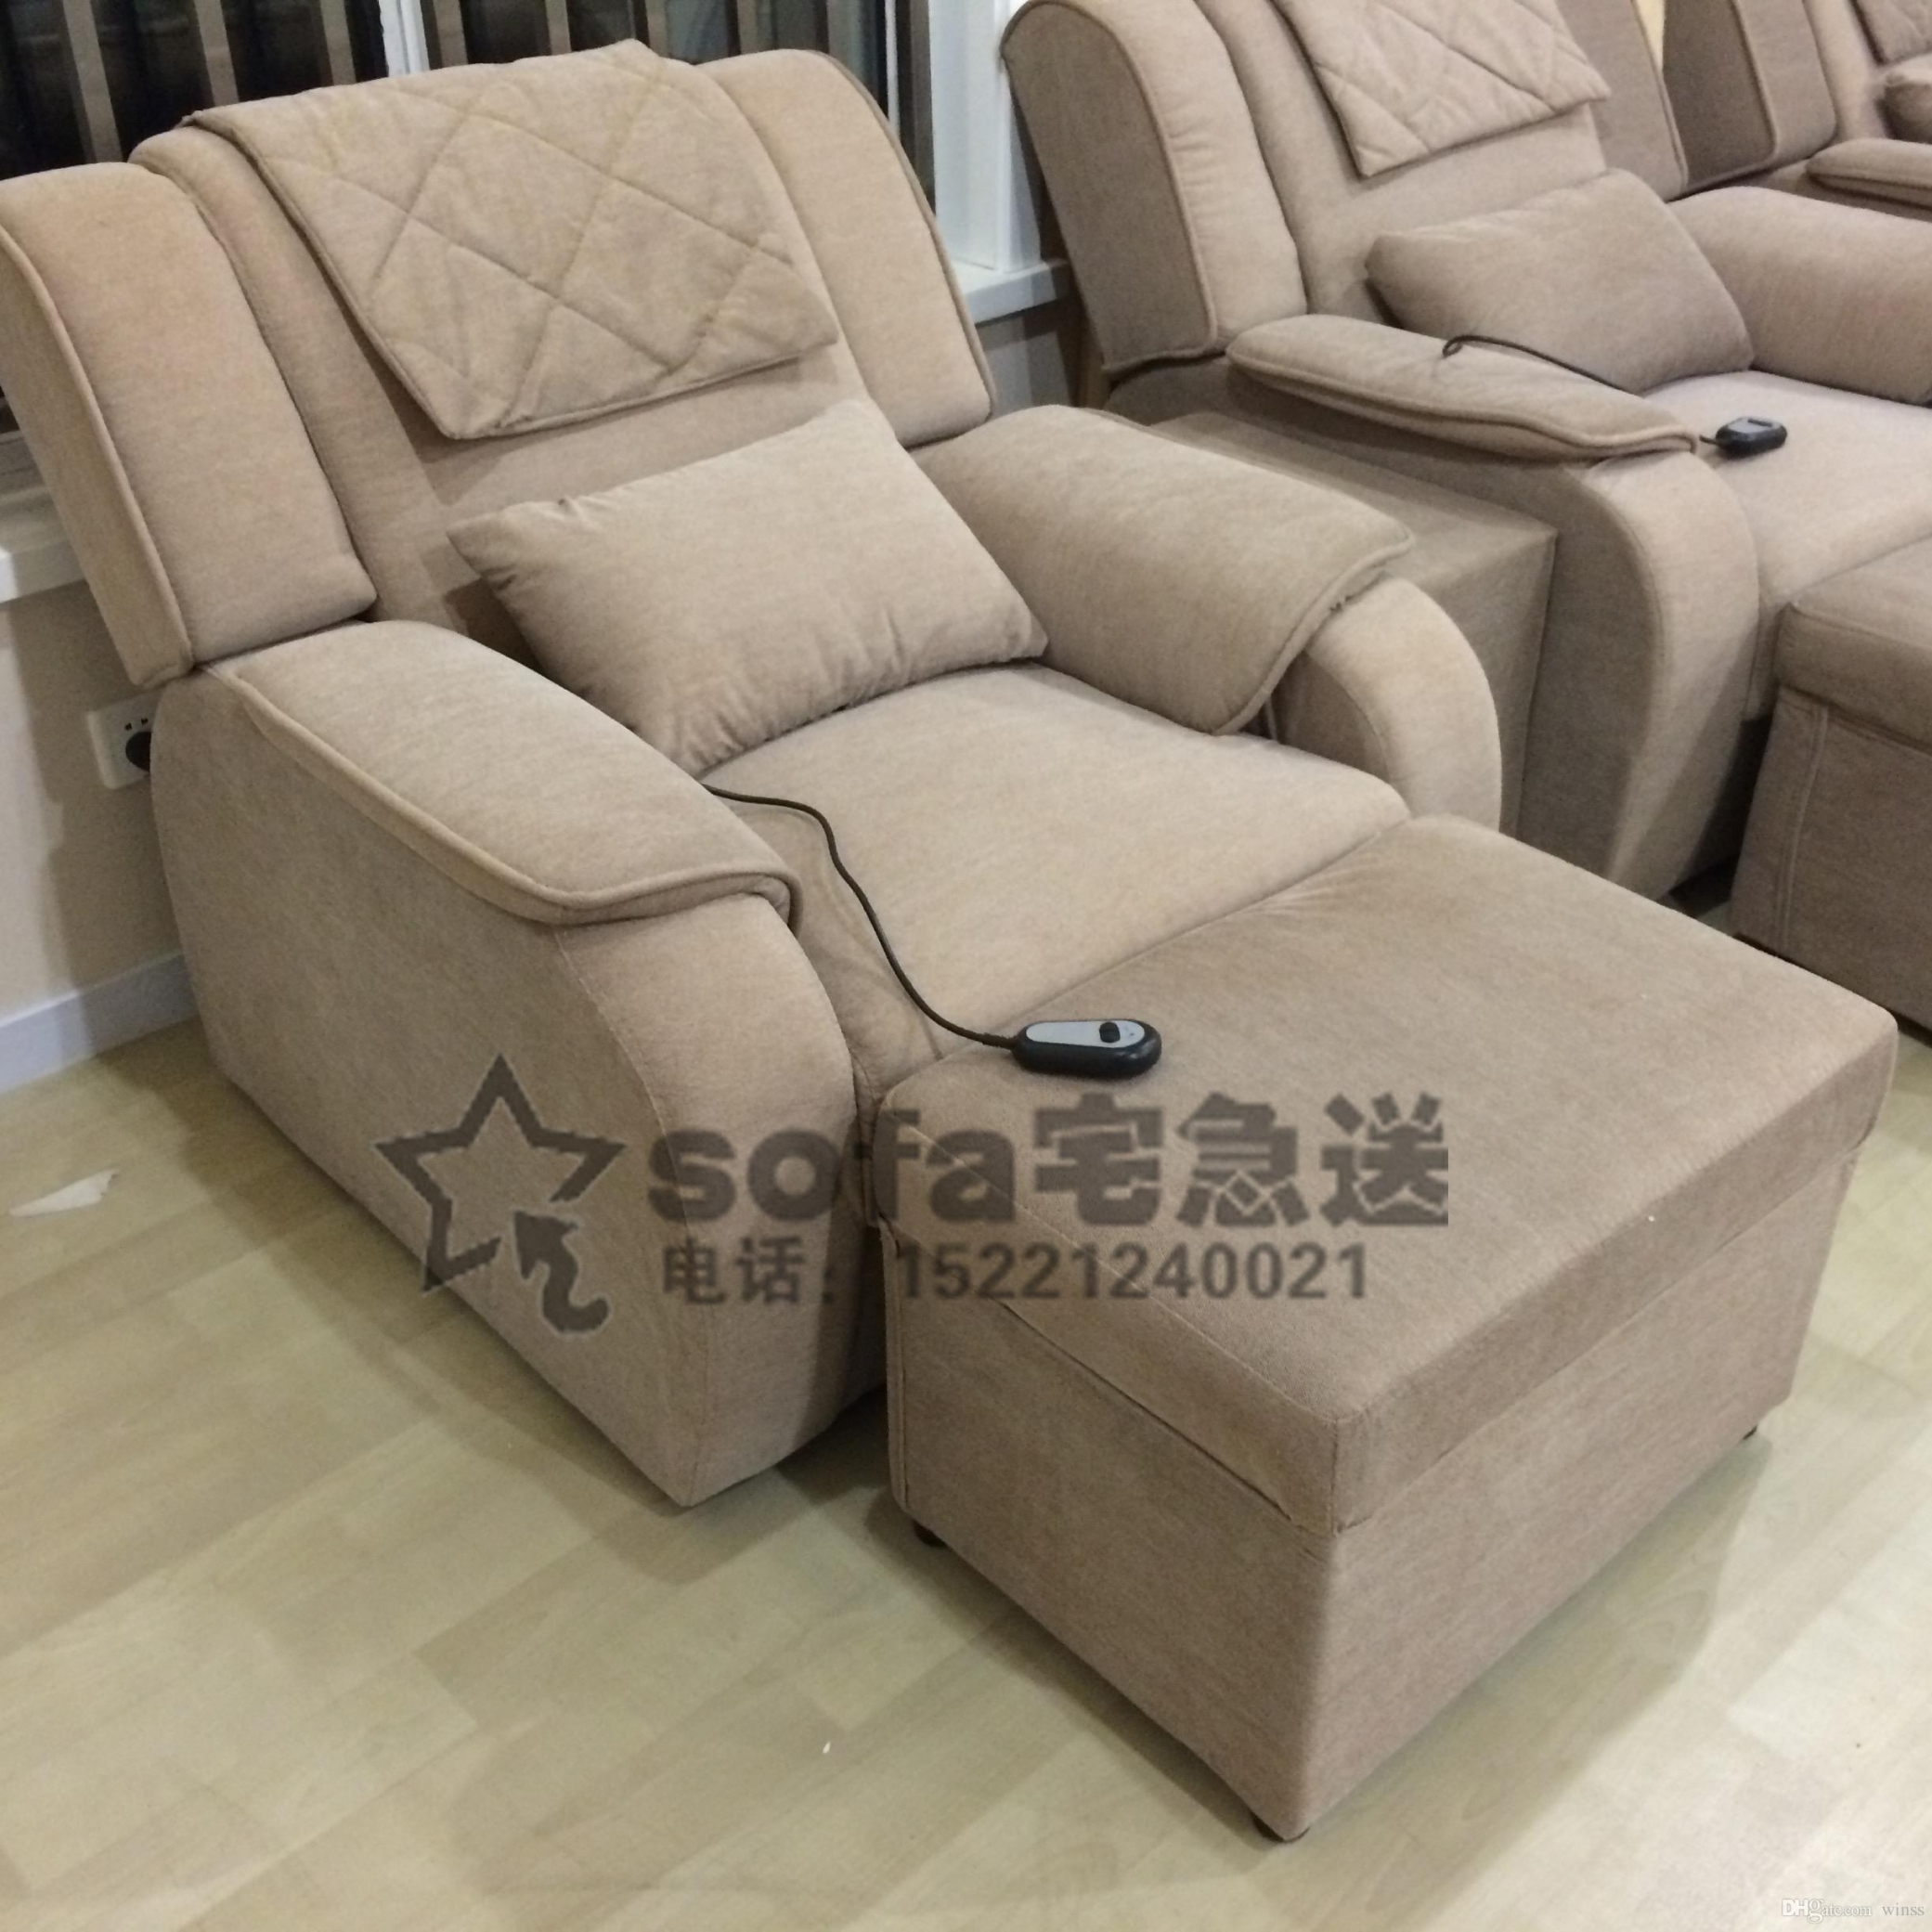 Foot Massage Chairs Throughout Foot Massage Sofa Chairs (Image 3 of 15)